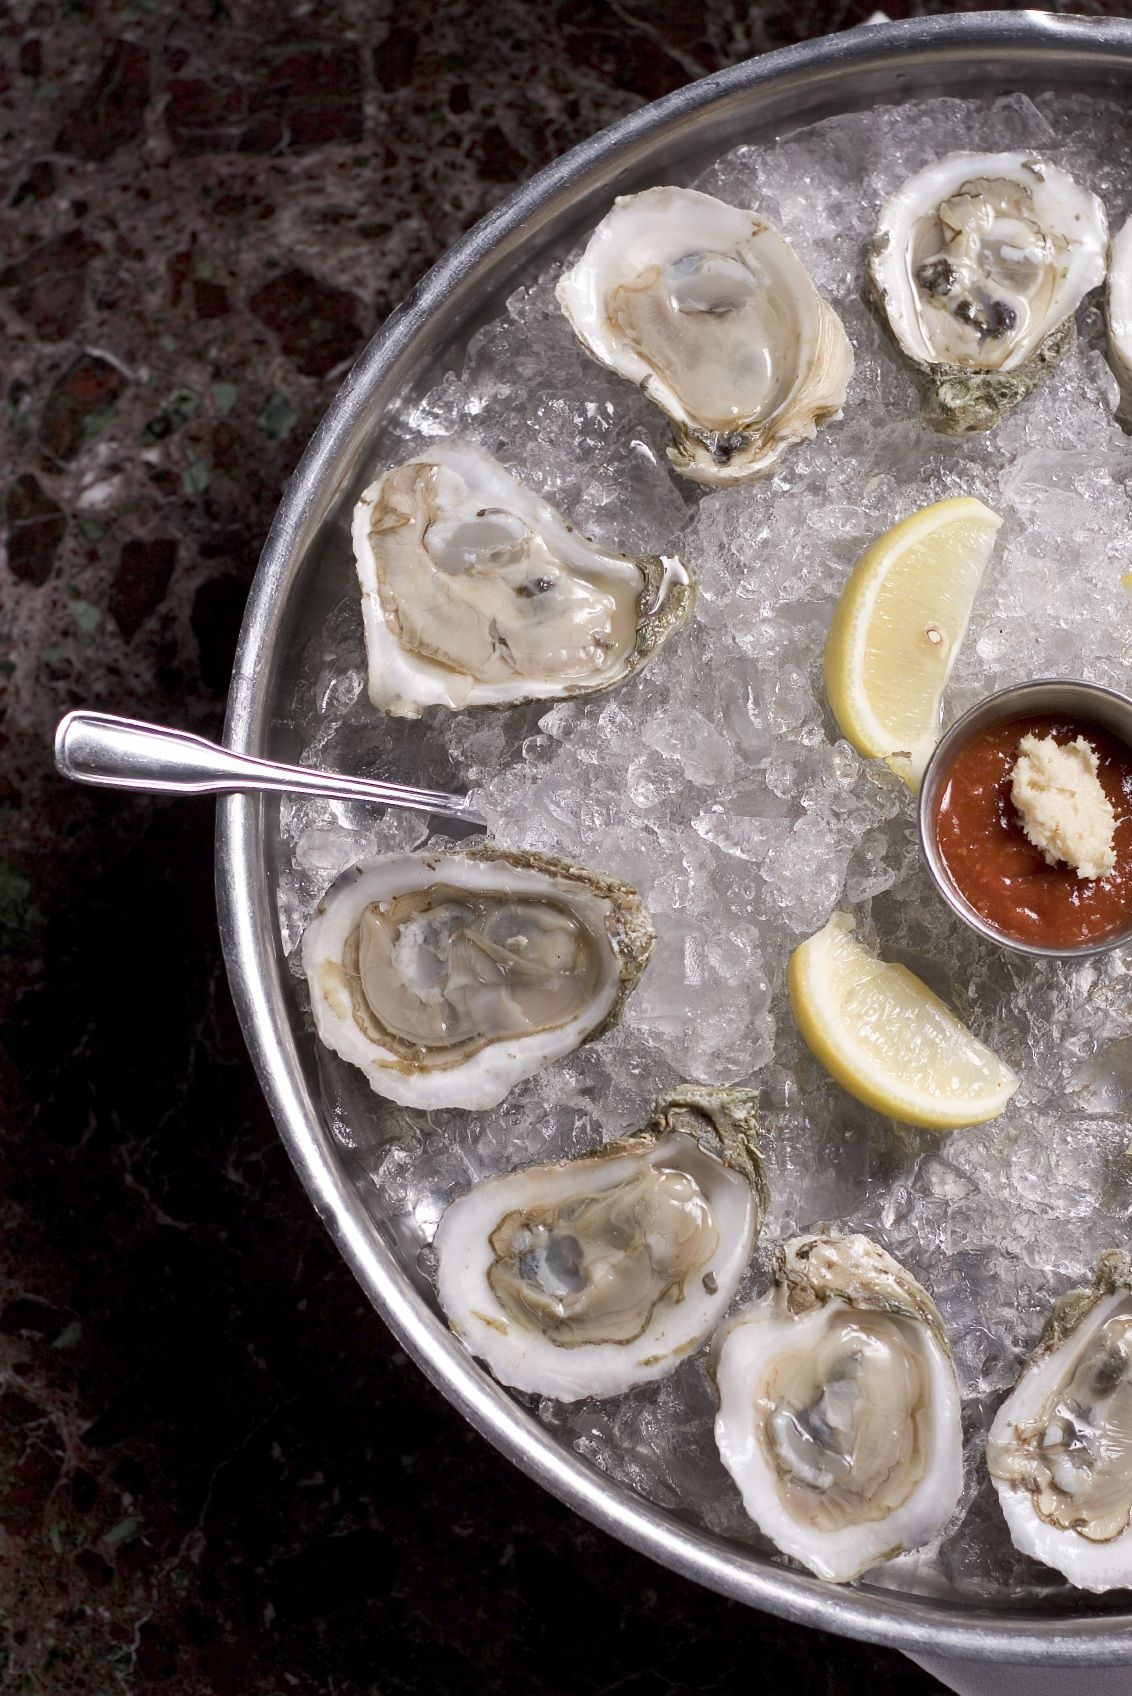 oysters on the half shell spotos oyster bar food